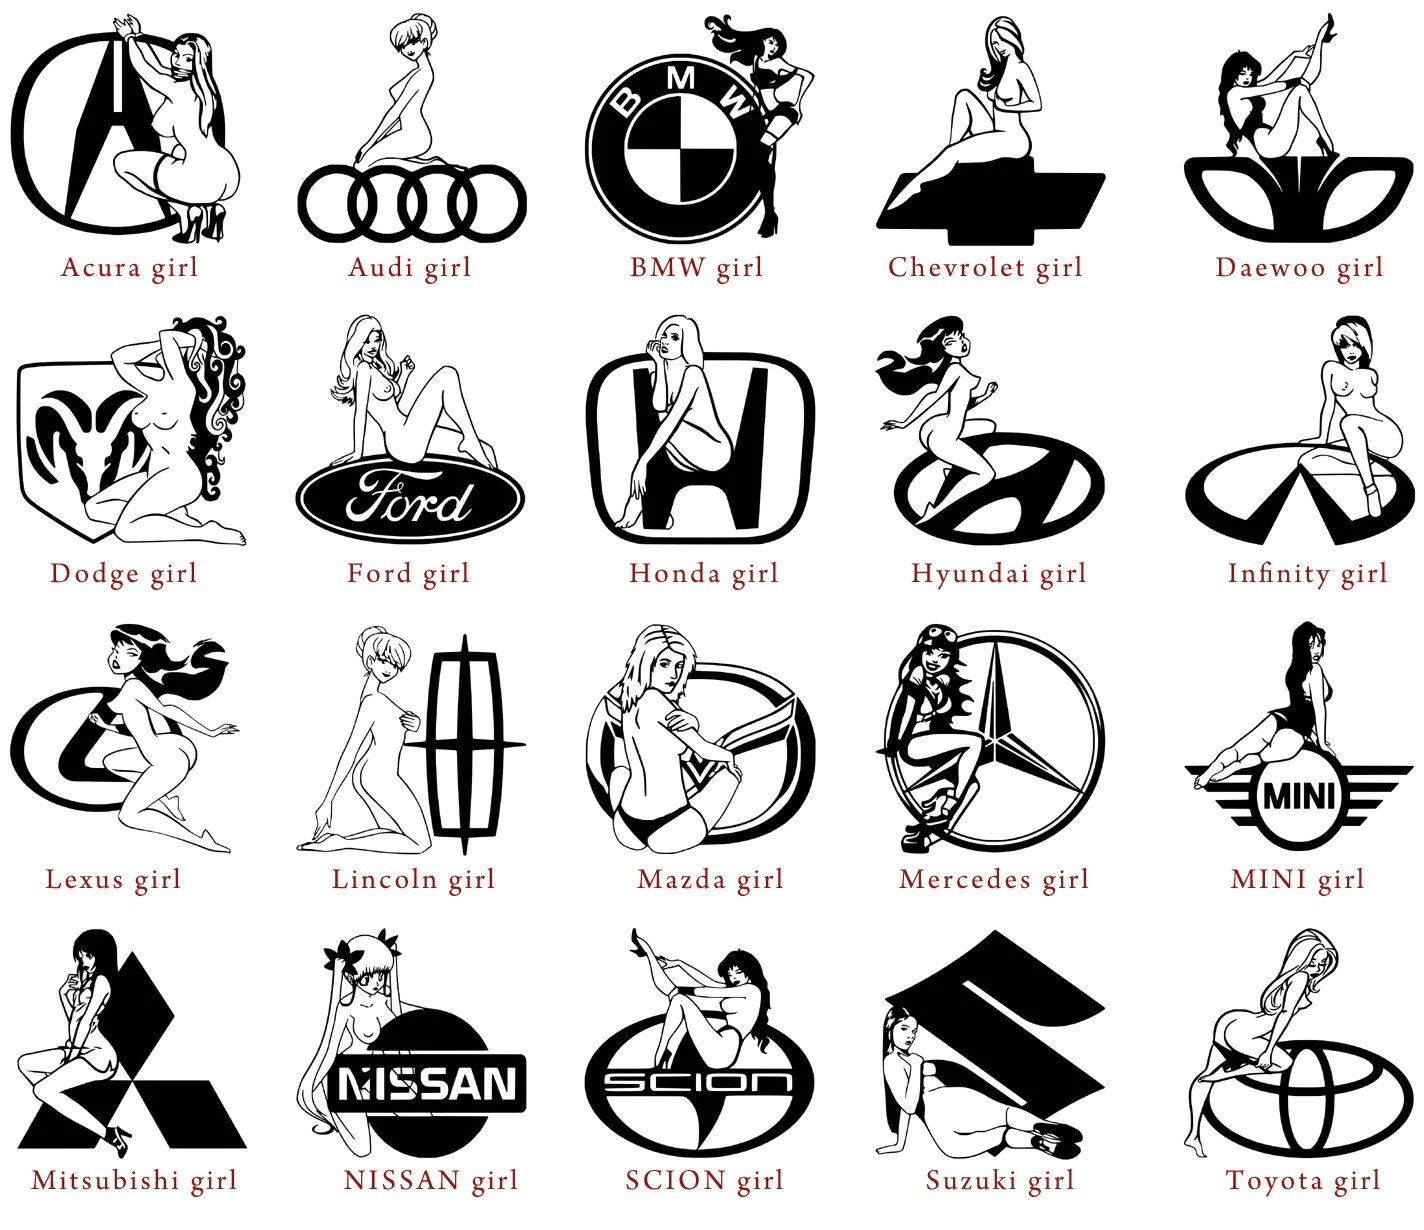 Vinyl Decals Acura Audi Bmw Chevrolet Daewoo Dodge Ford Honda